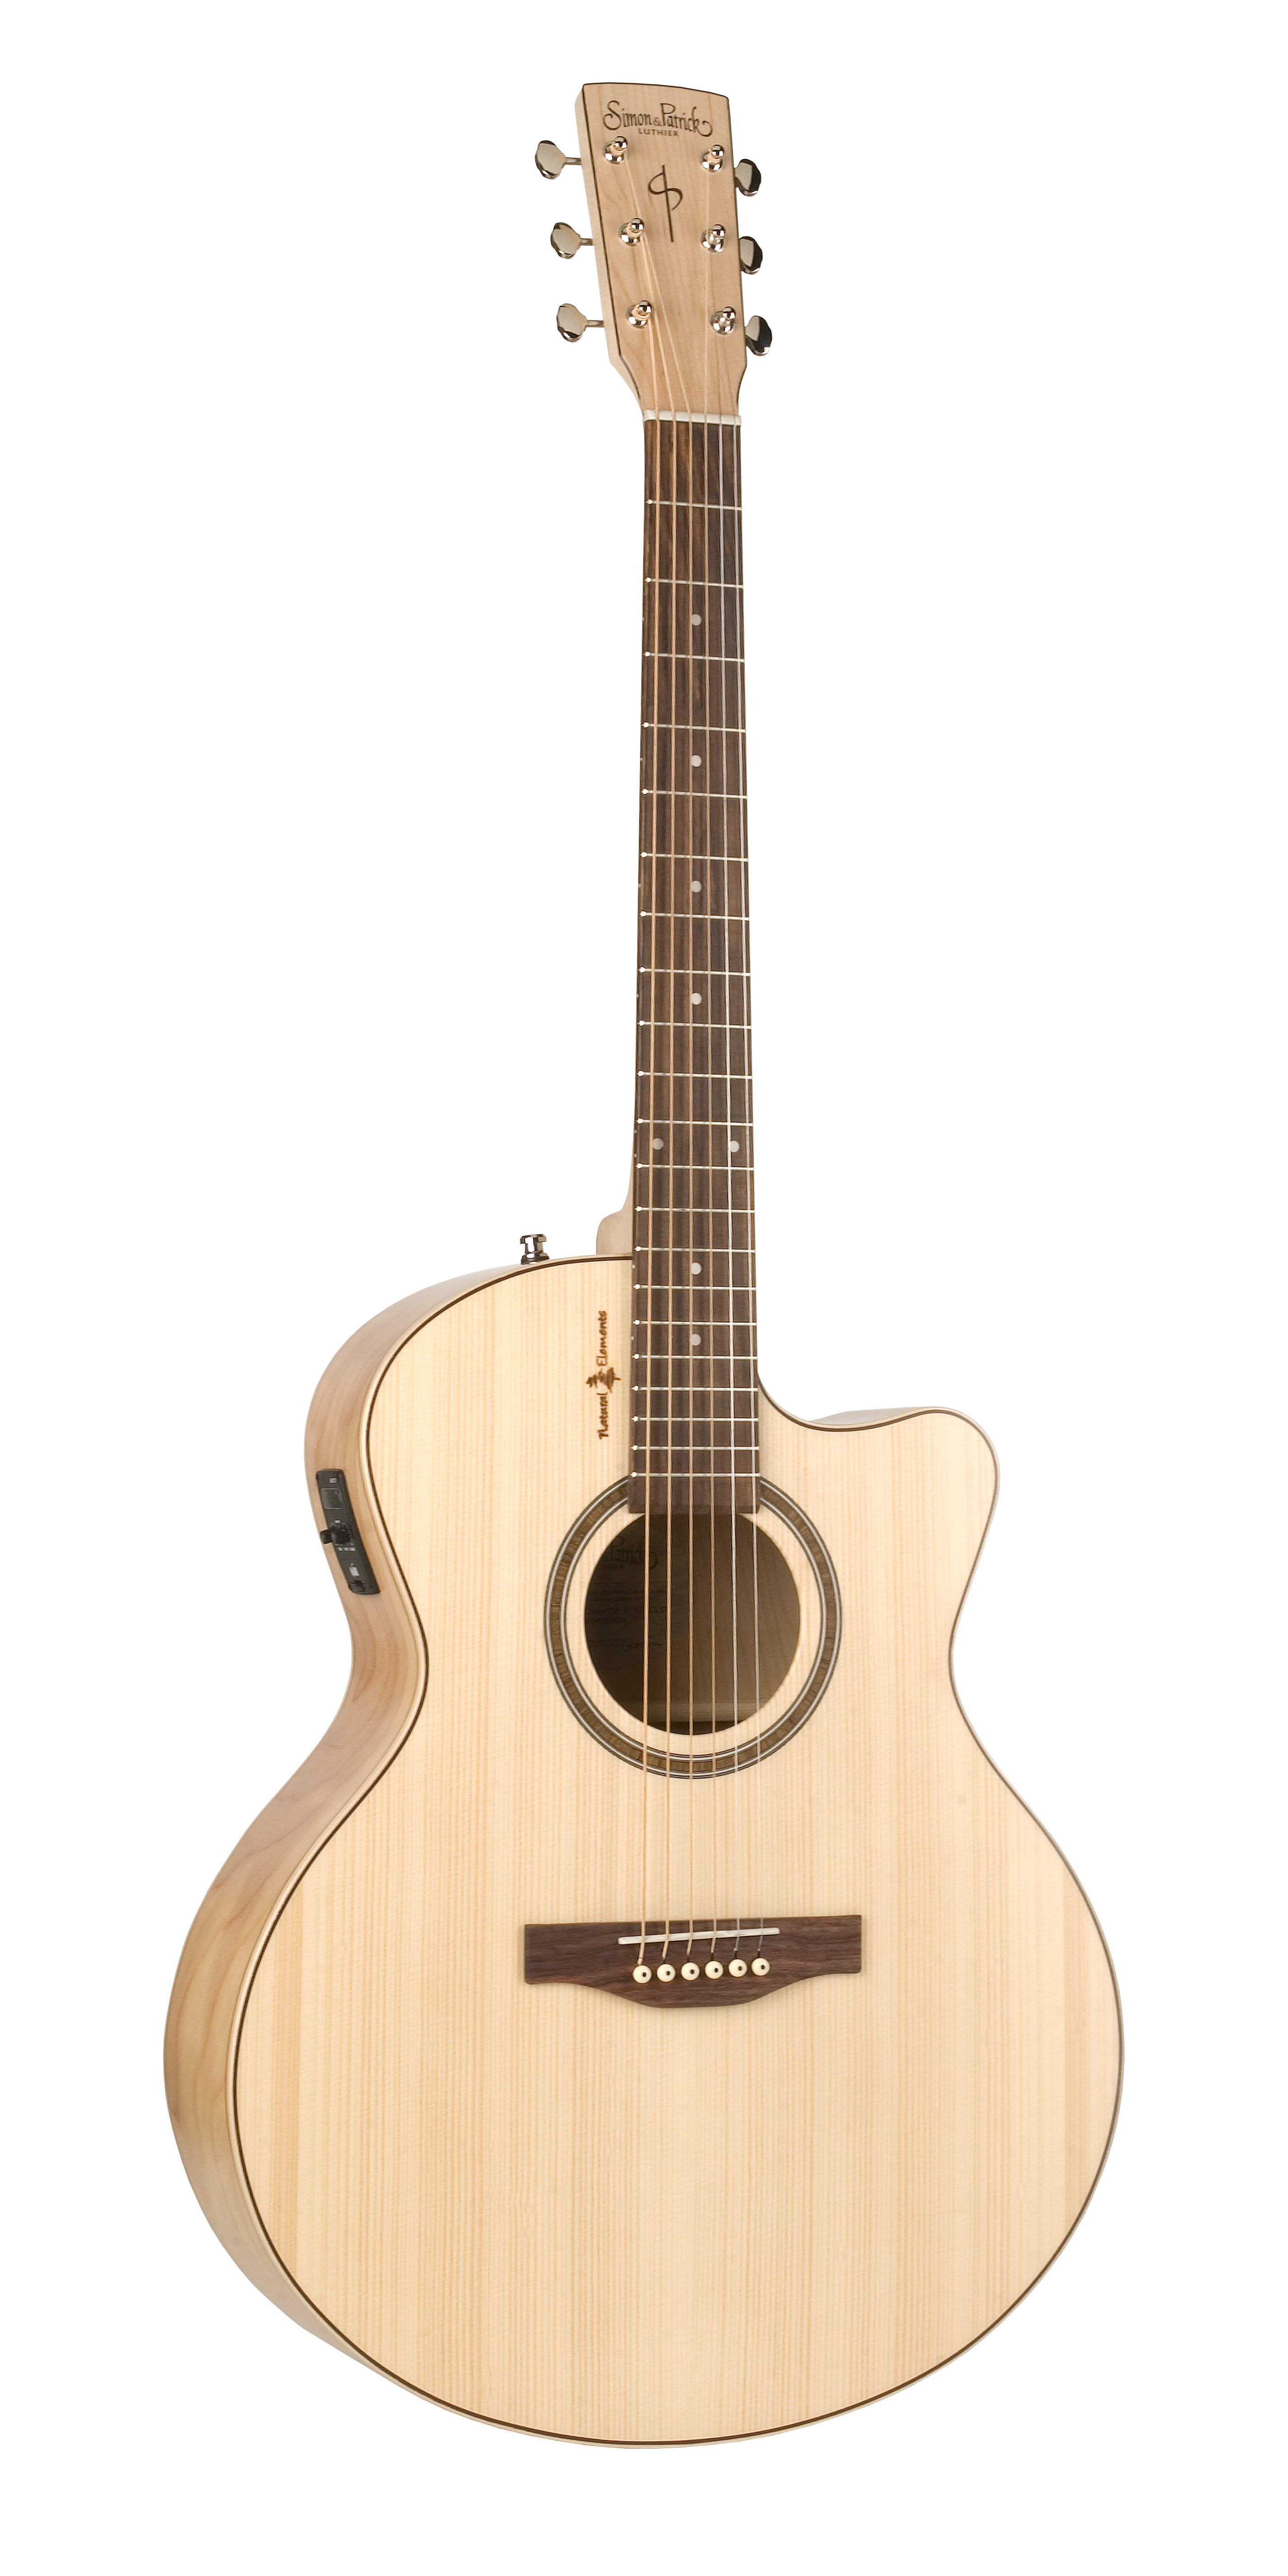 Simon & Patrick 36349 Natural Elements Heart of Wild Cherry Cutaway Mini-Jumbo Acoustic Electric Guitar w/ B-band T35